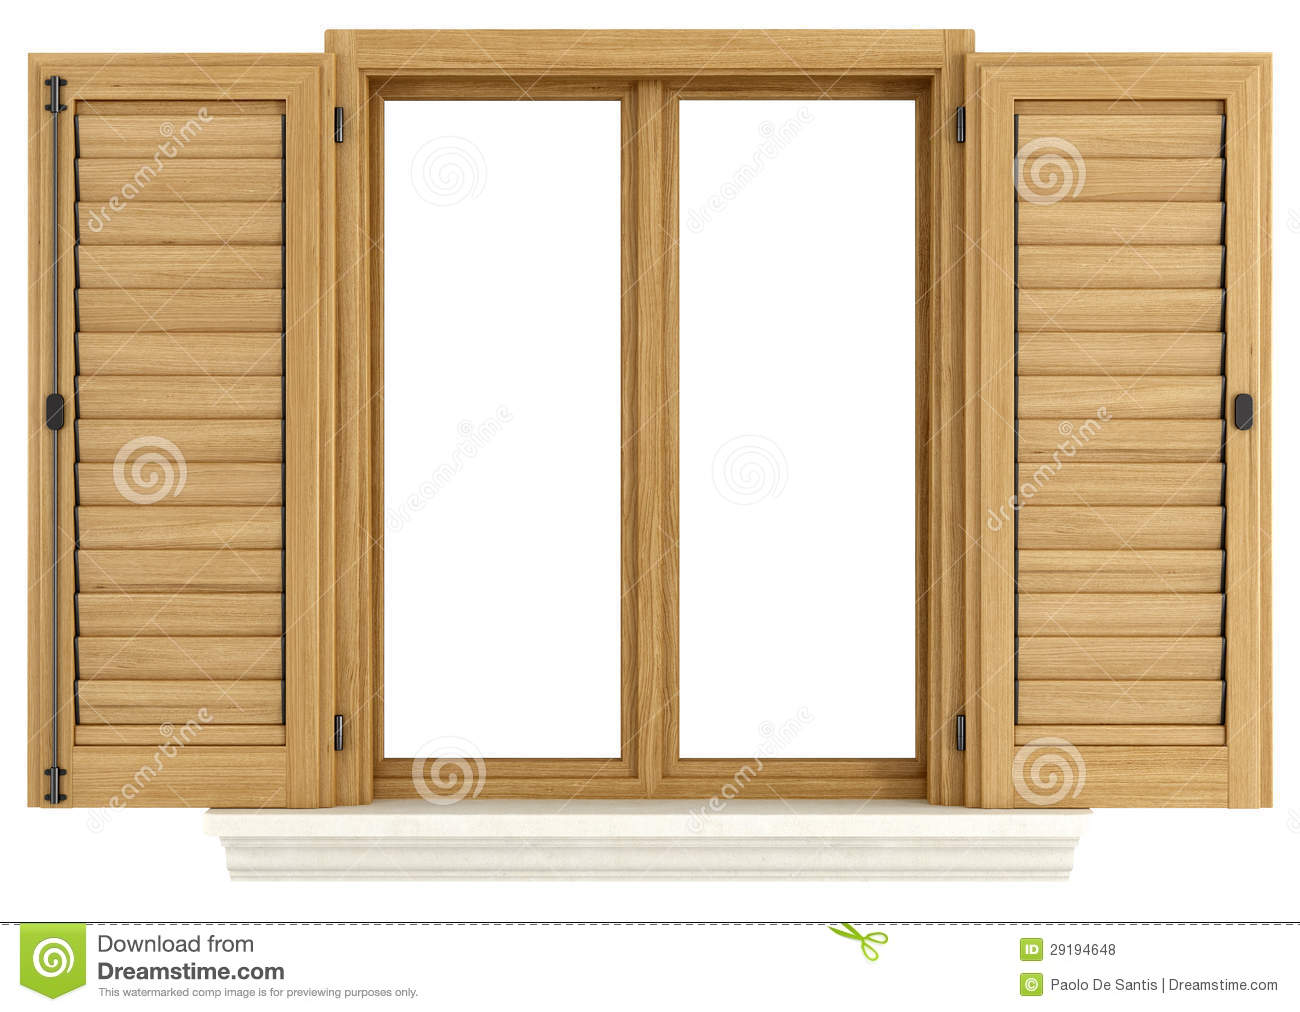 Wooden window with open shutter stock illustration for Wooden windows